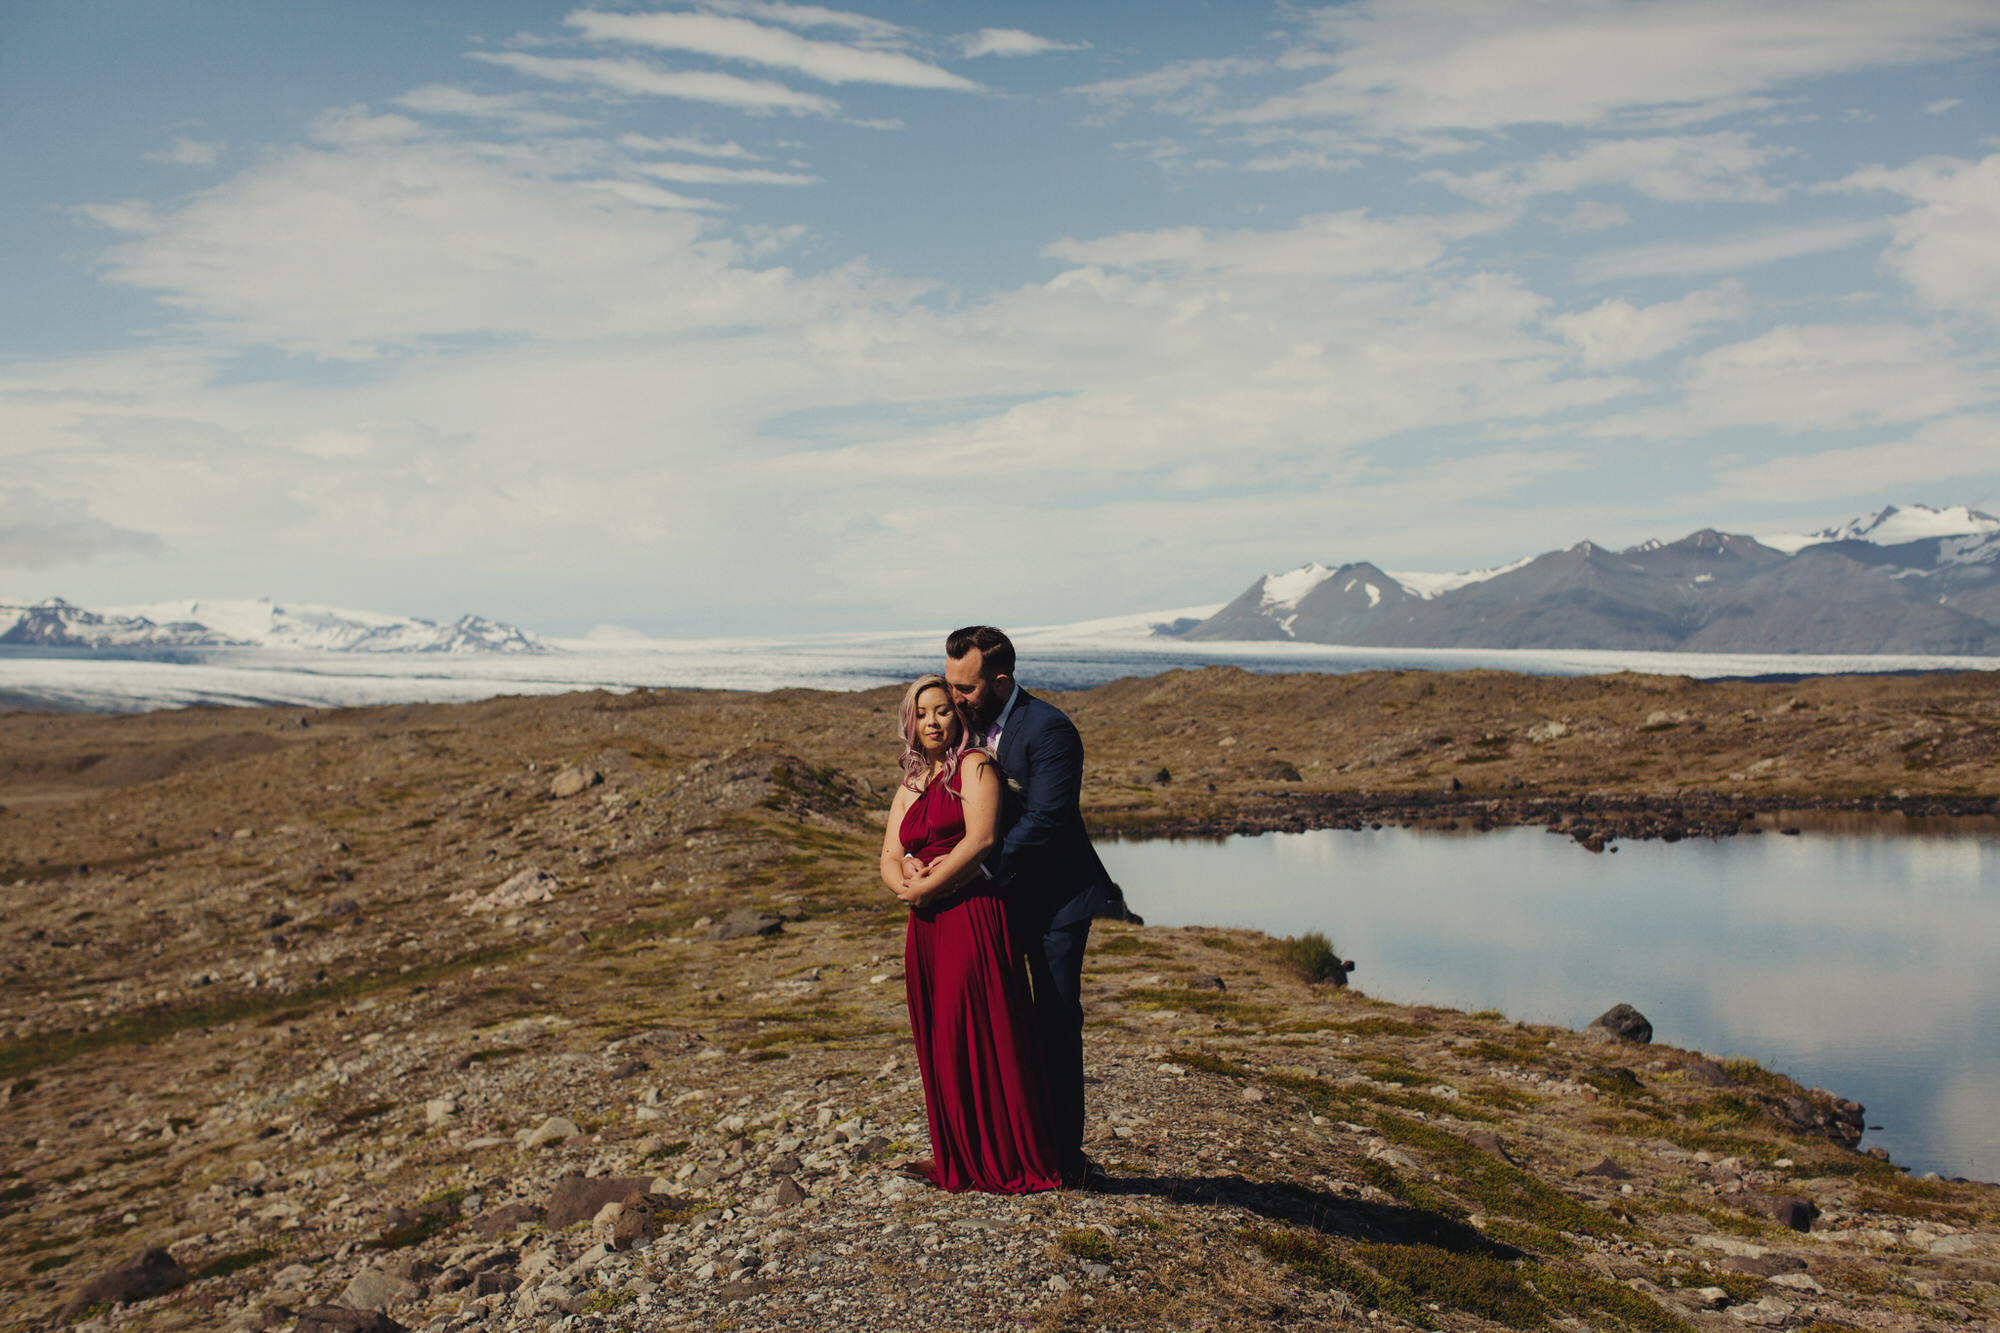 iceland wedding elopement photographer ©Anne-Claire Brun